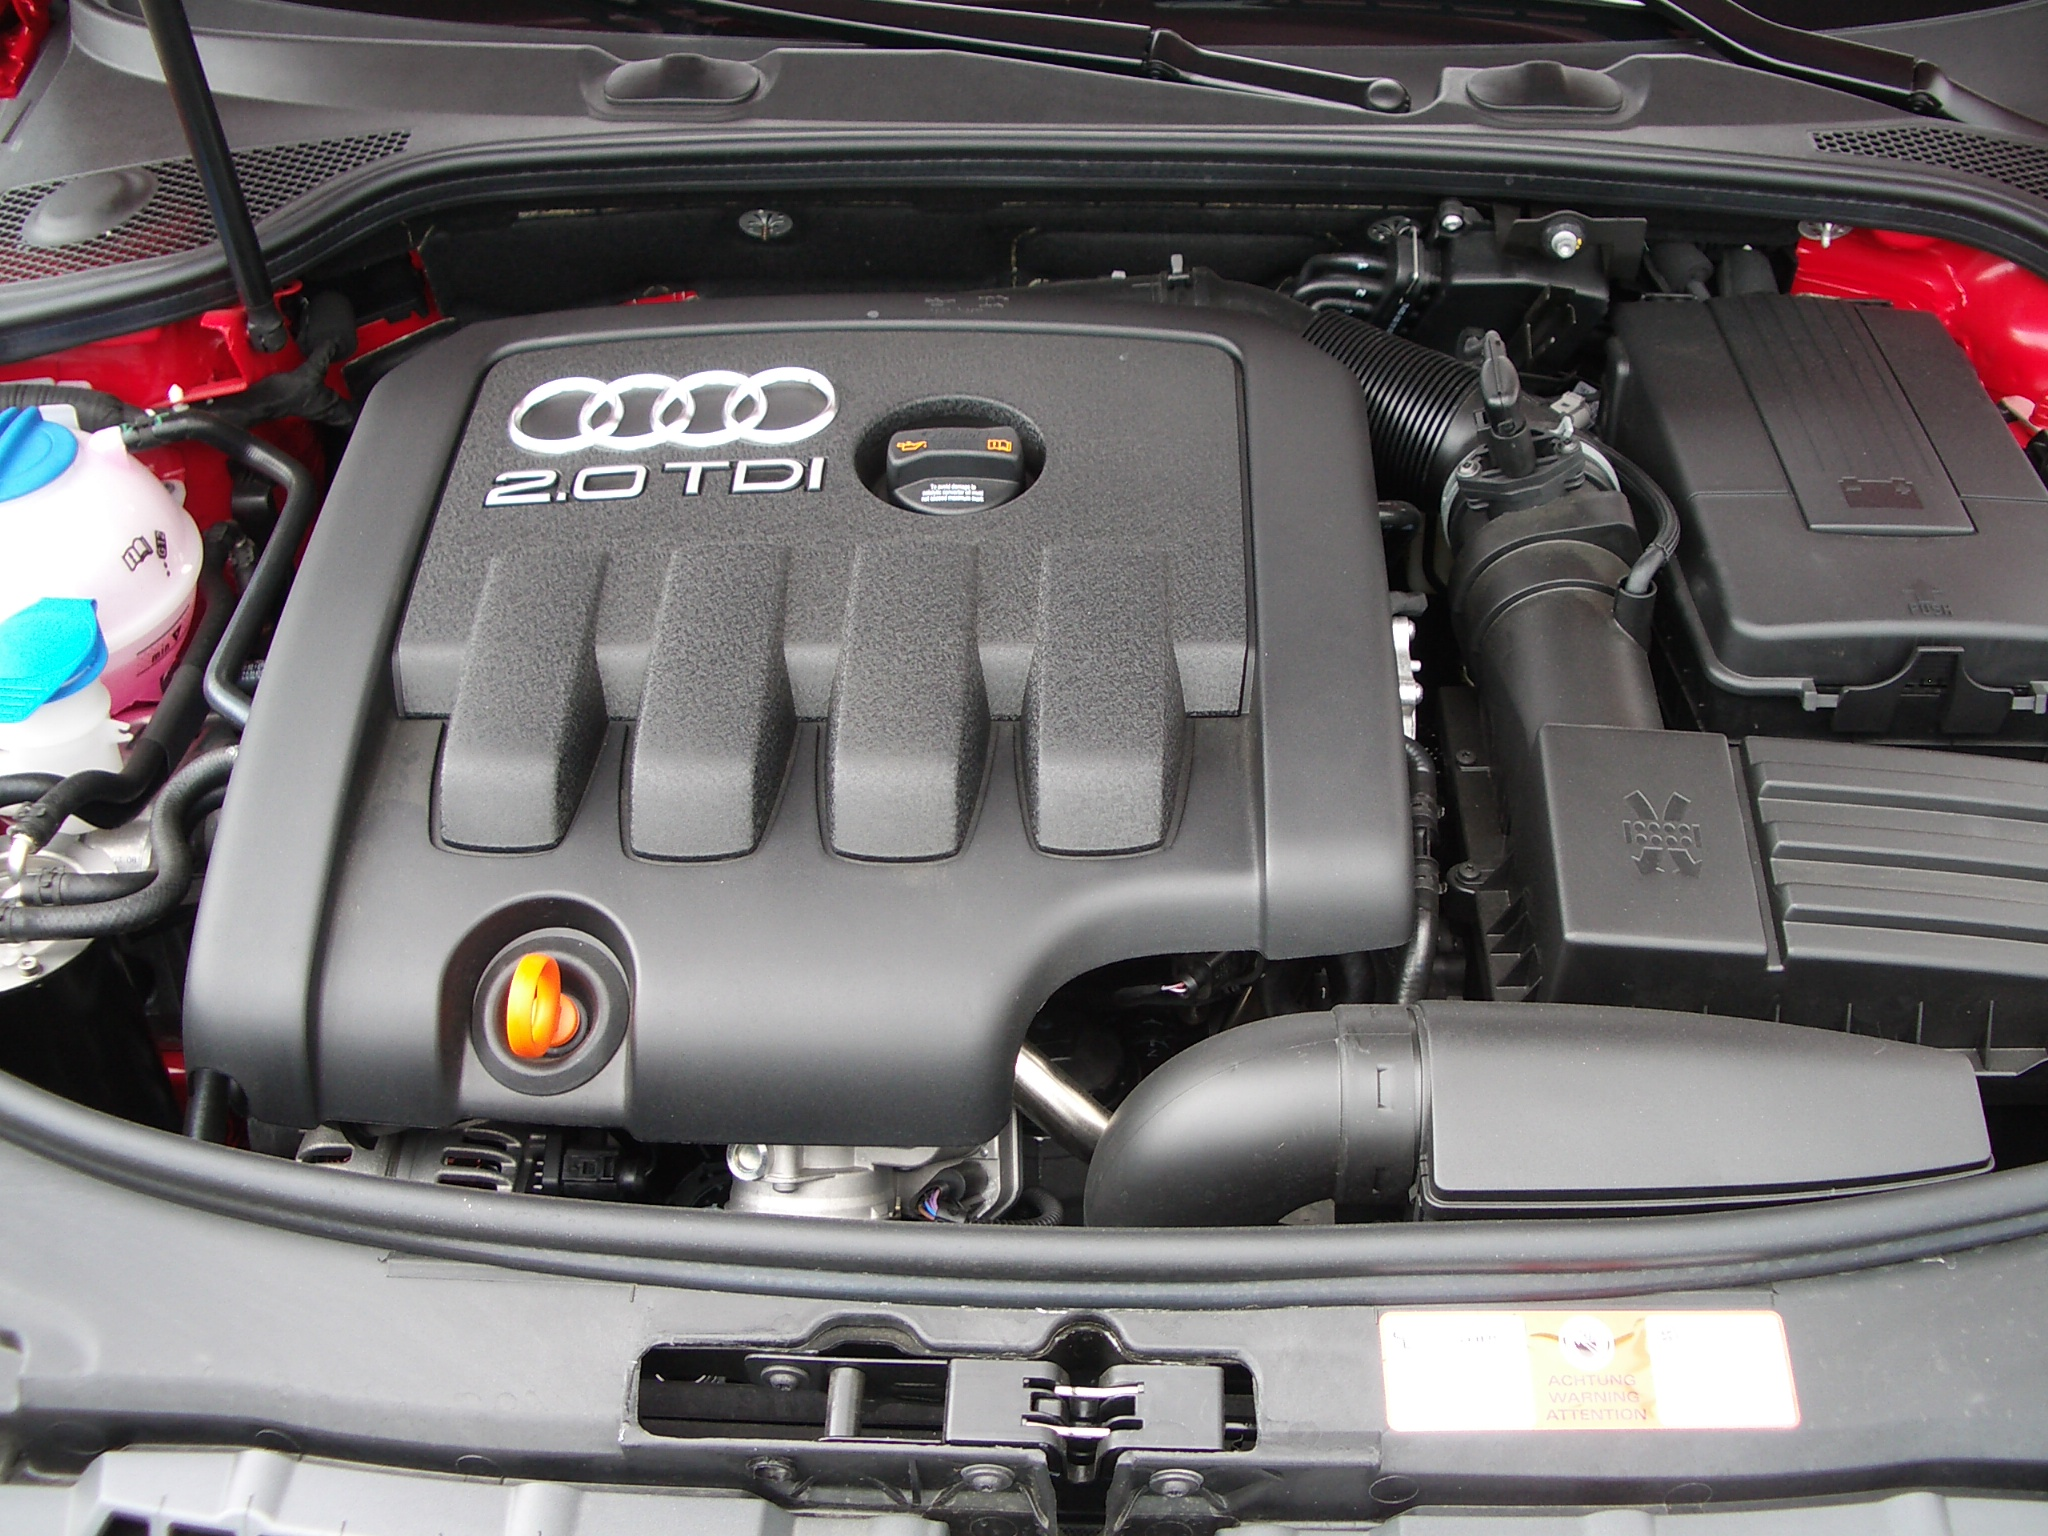 Audi a4 diesel engine oil type